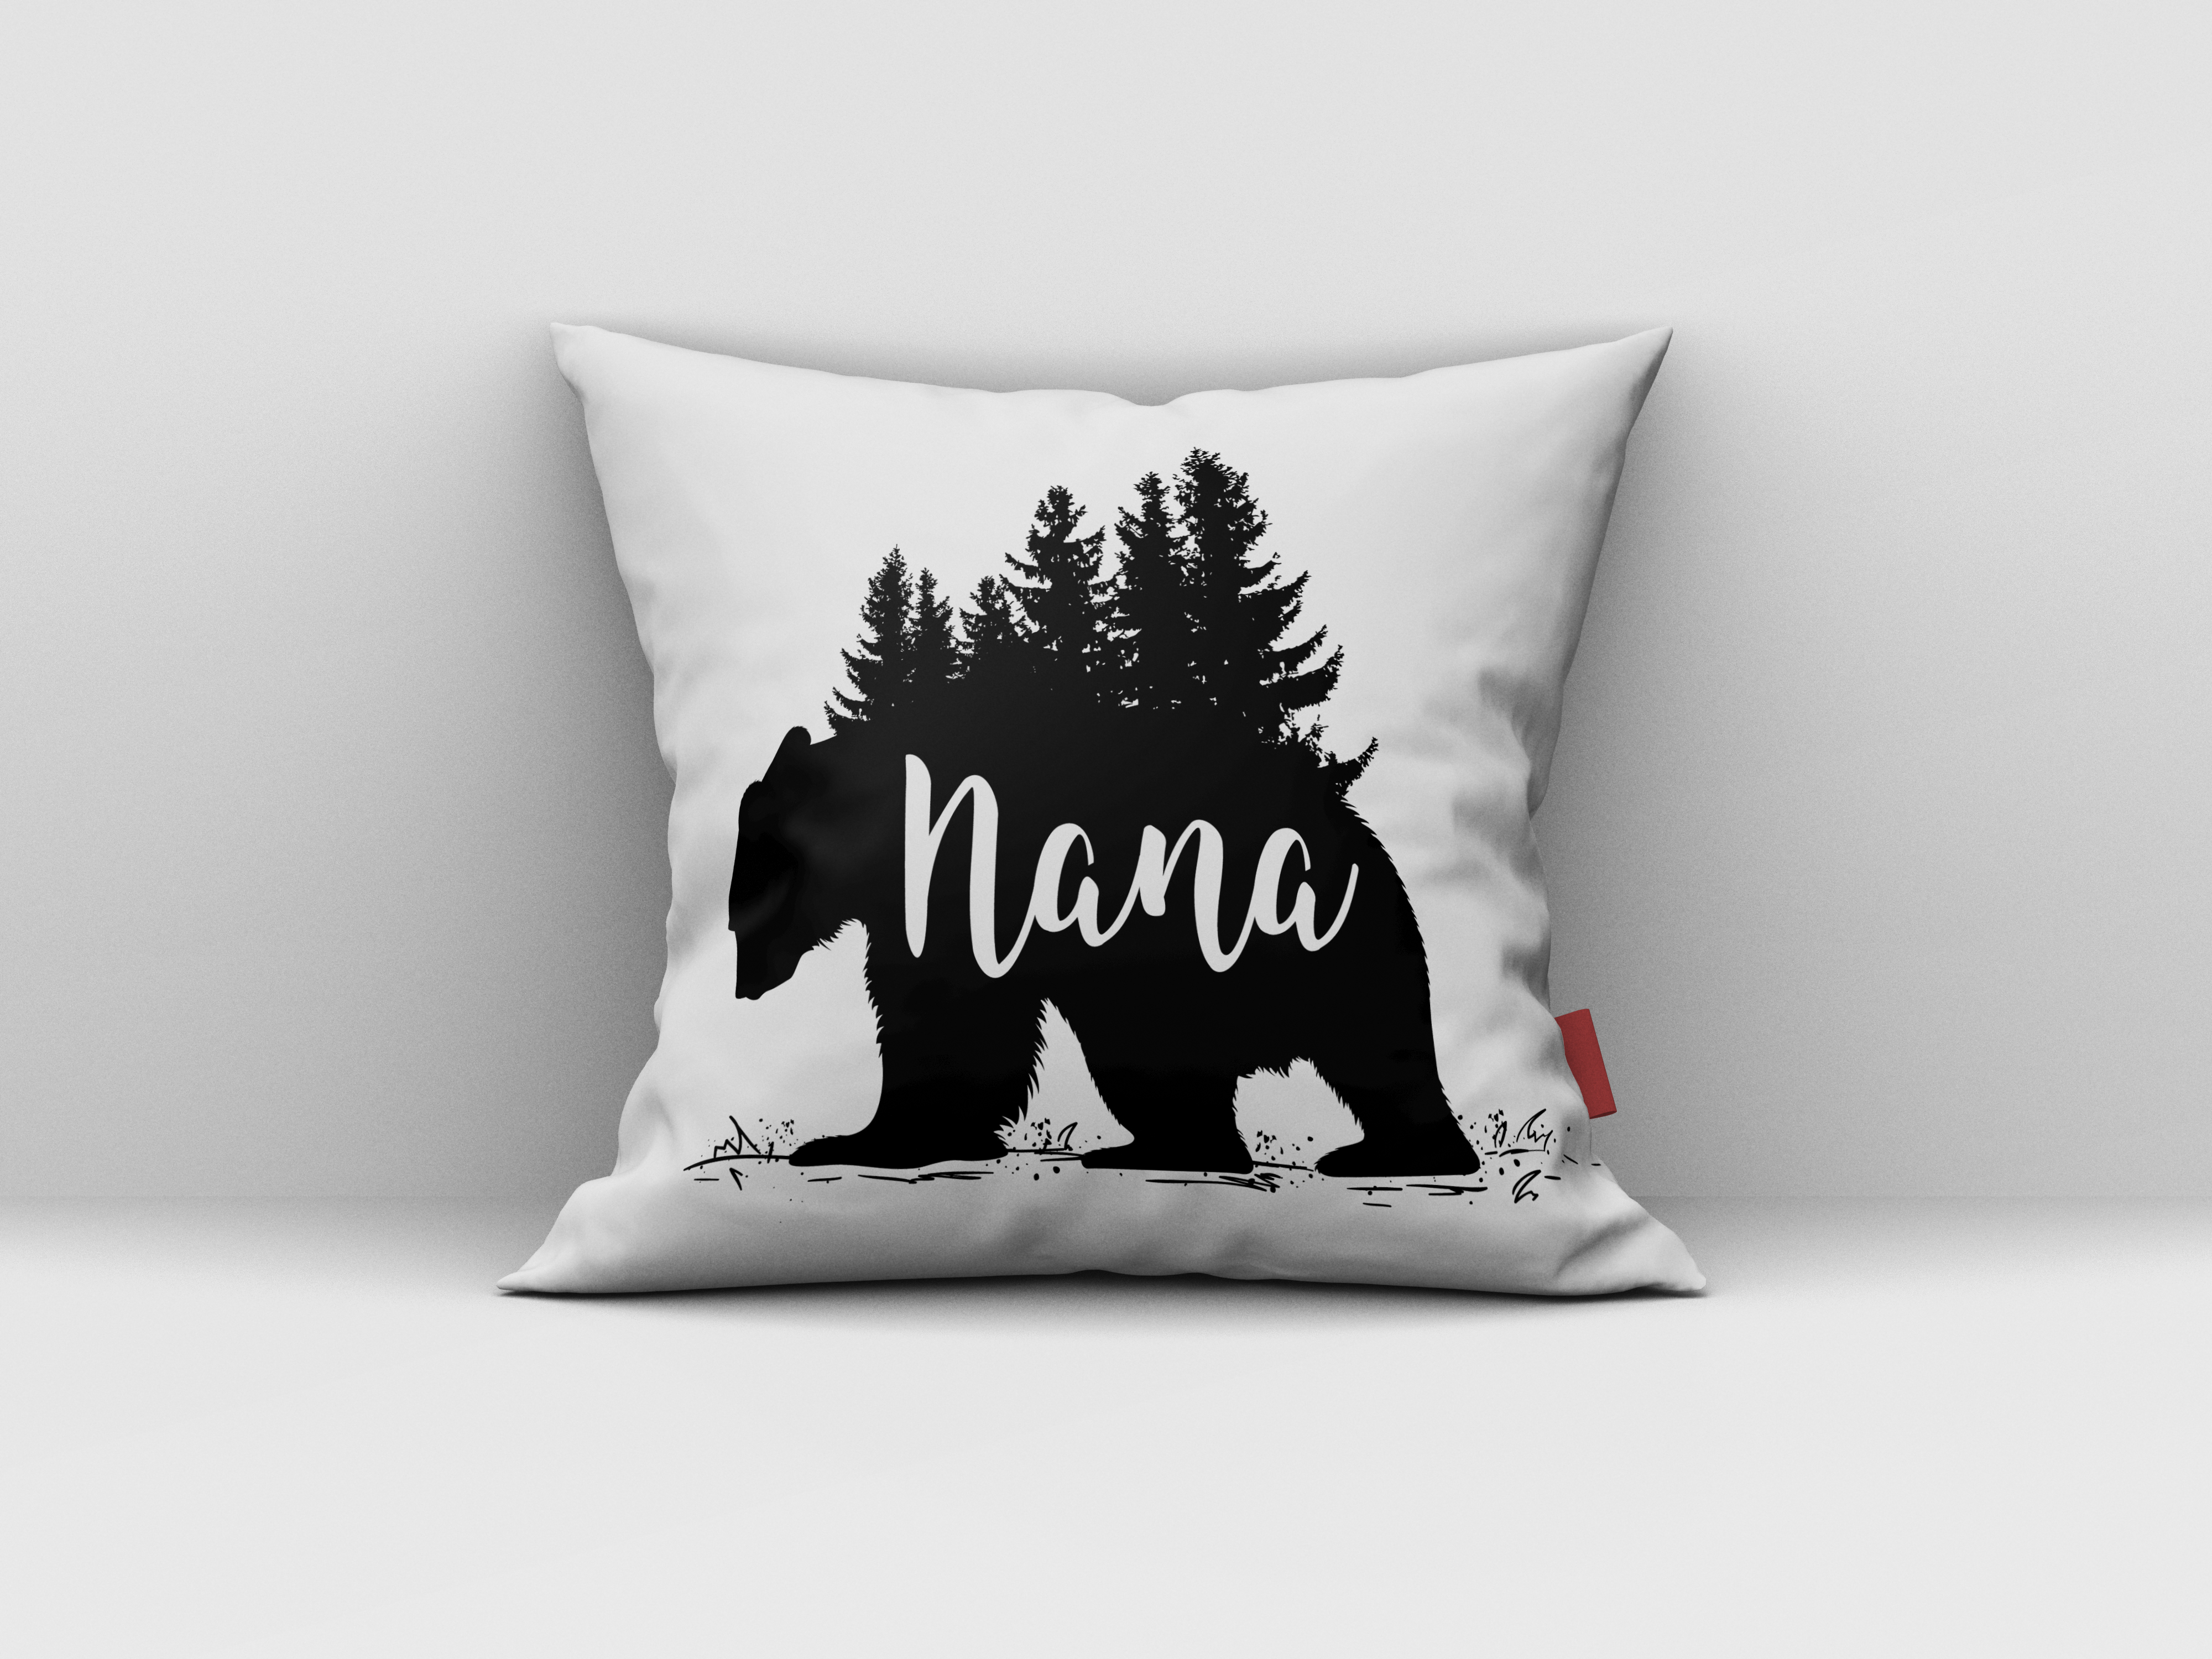 Download Free Nana Bear Design Graphic By Aartstudioexpo Creative Fabrica for Cricut Explore, Silhouette and other cutting machines.